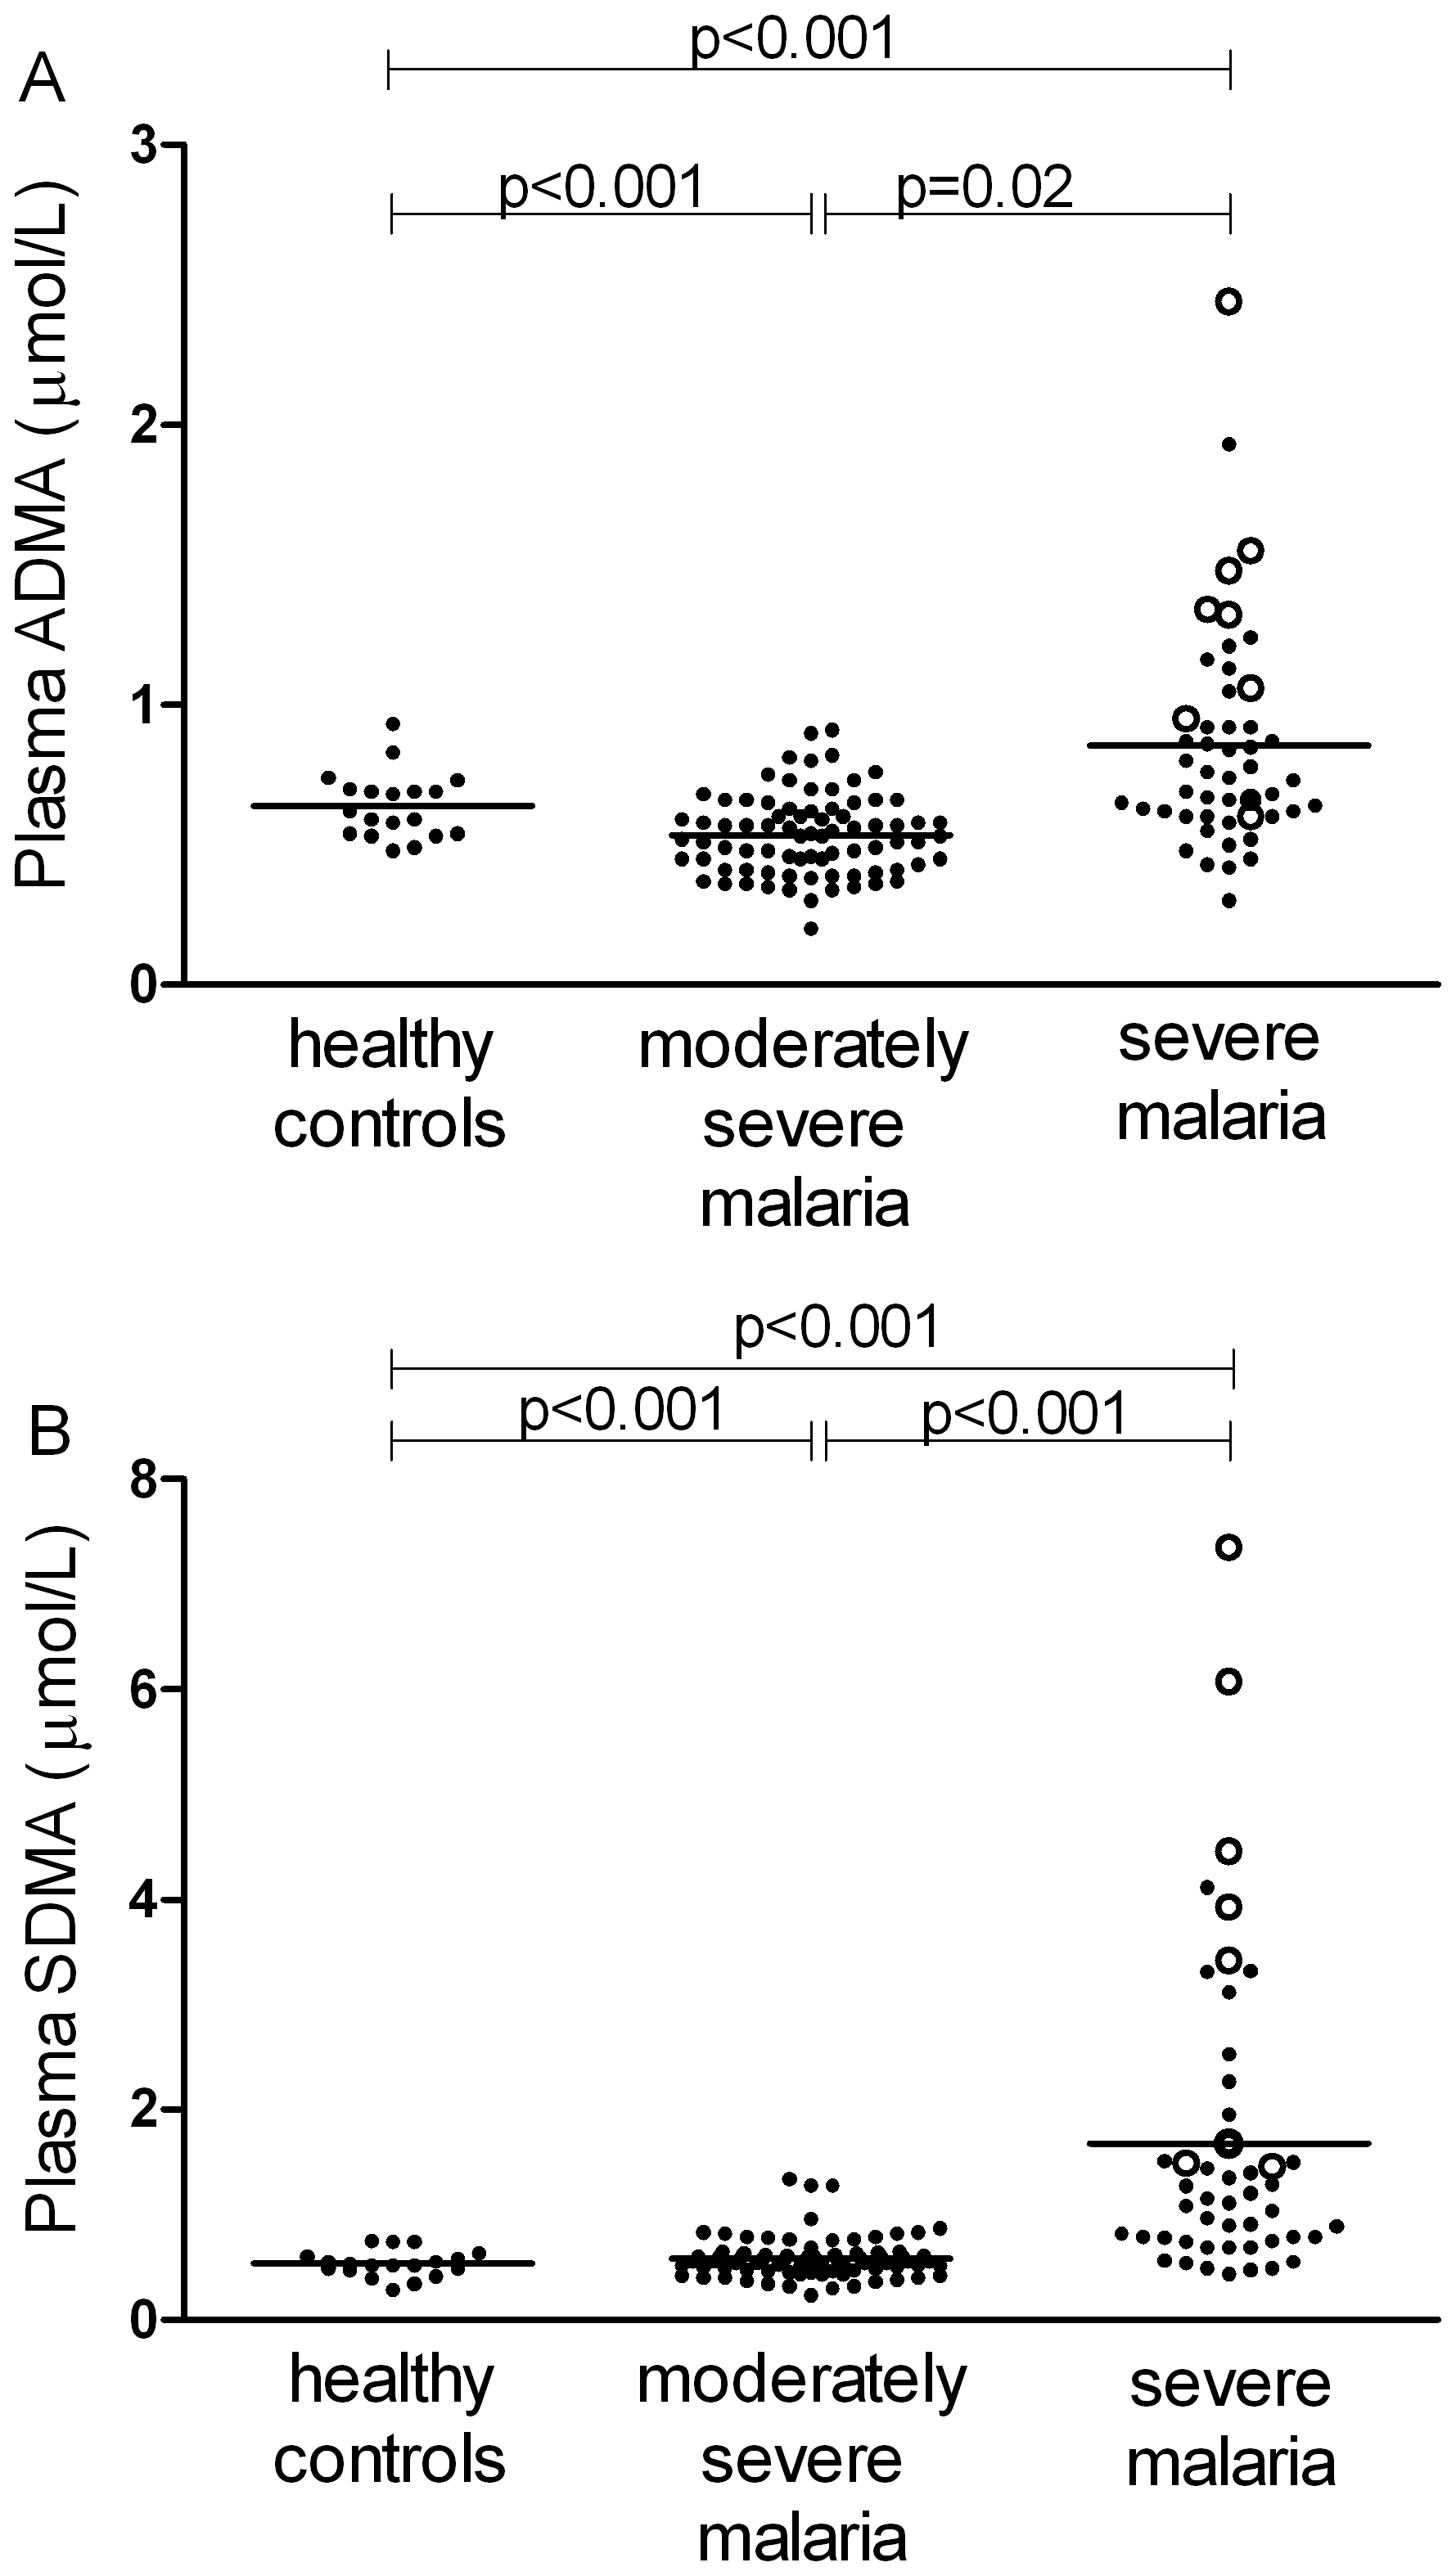 Longitudinal course of plasma ADMA concentrations and L-arginine/ADMA ratio in patients with severe malaria.